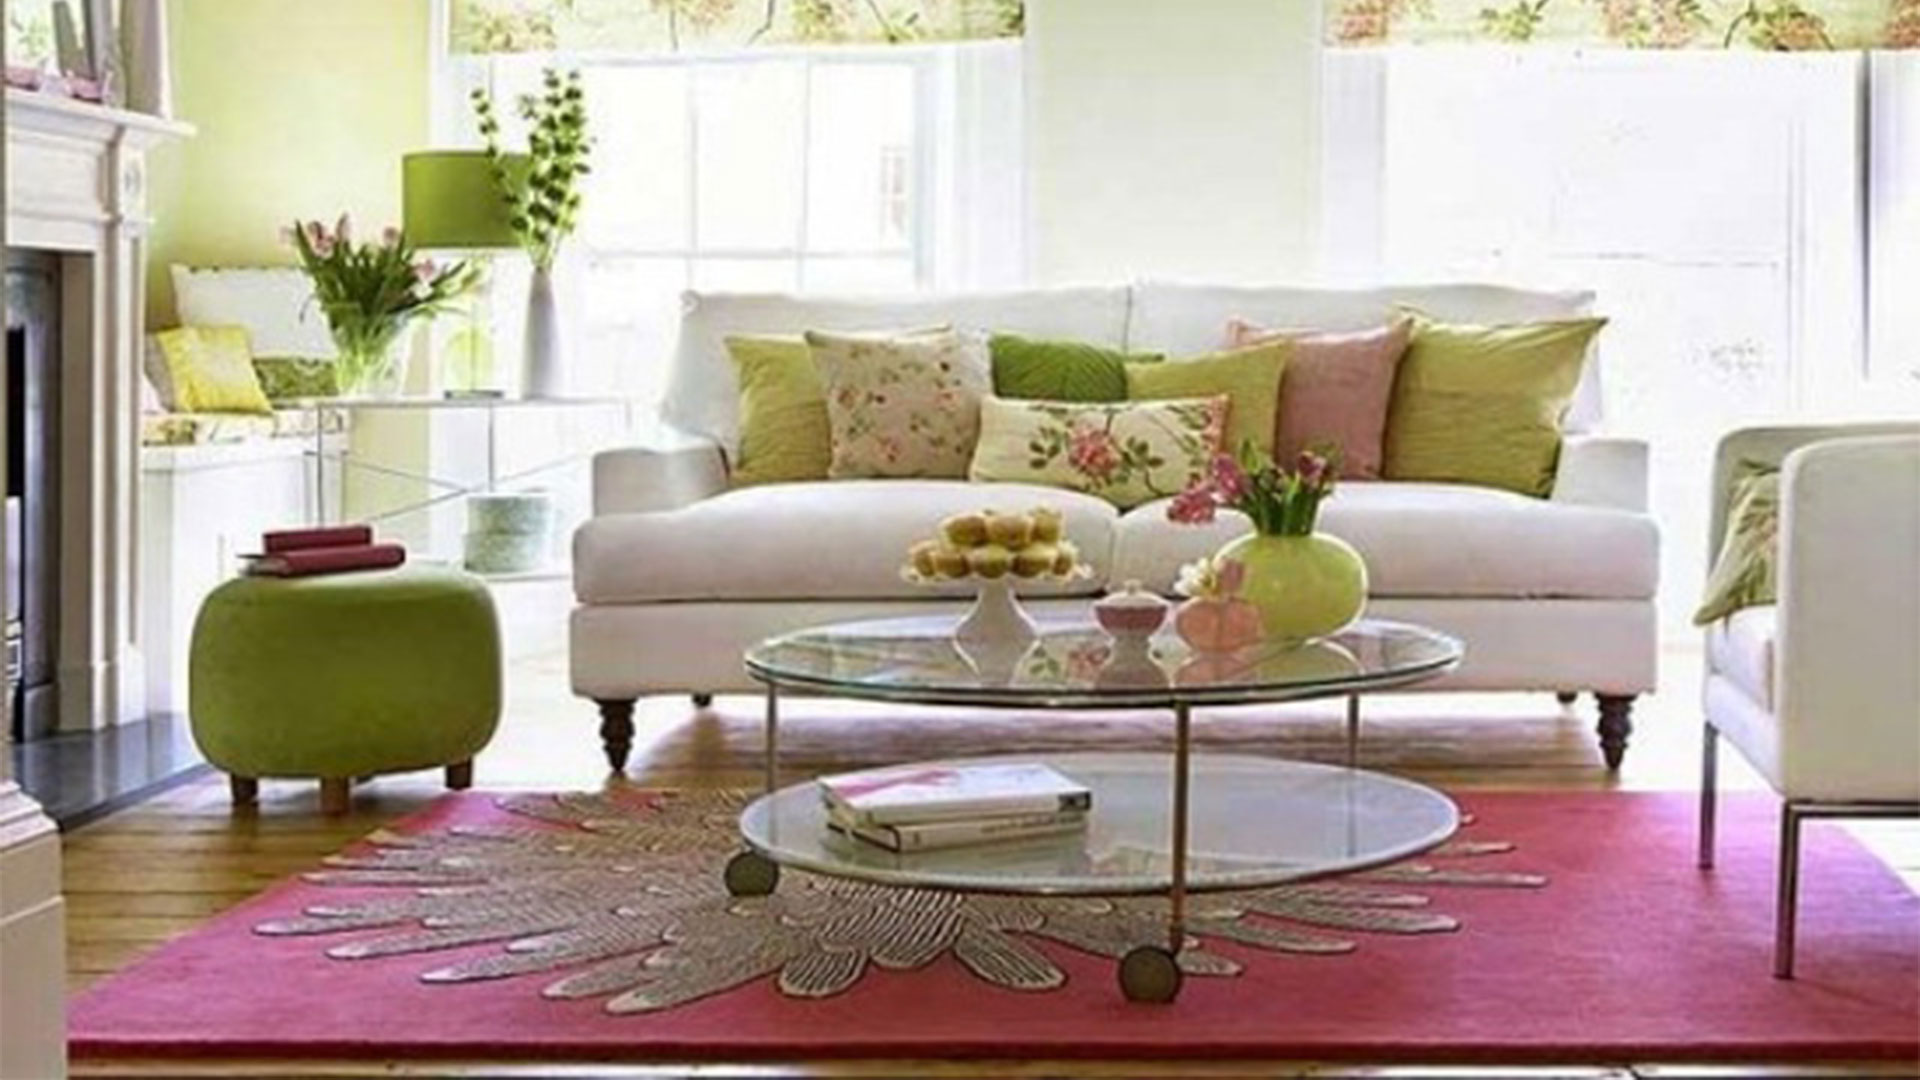 36 Living Room Decorating Ideas That Smells Like Spring. Kitchen Mats For Wood Floors. Latest Kitchen Colors. Resurface Kitchen Countertop. What Color Kitchen Cabinets With Dark Wood Floors. Kitchen Backsplash Self Adhesive Tiles. Modern Backsplash Kitchen. Kitchen With Green Countertops. How To Build Kitchen Countertops